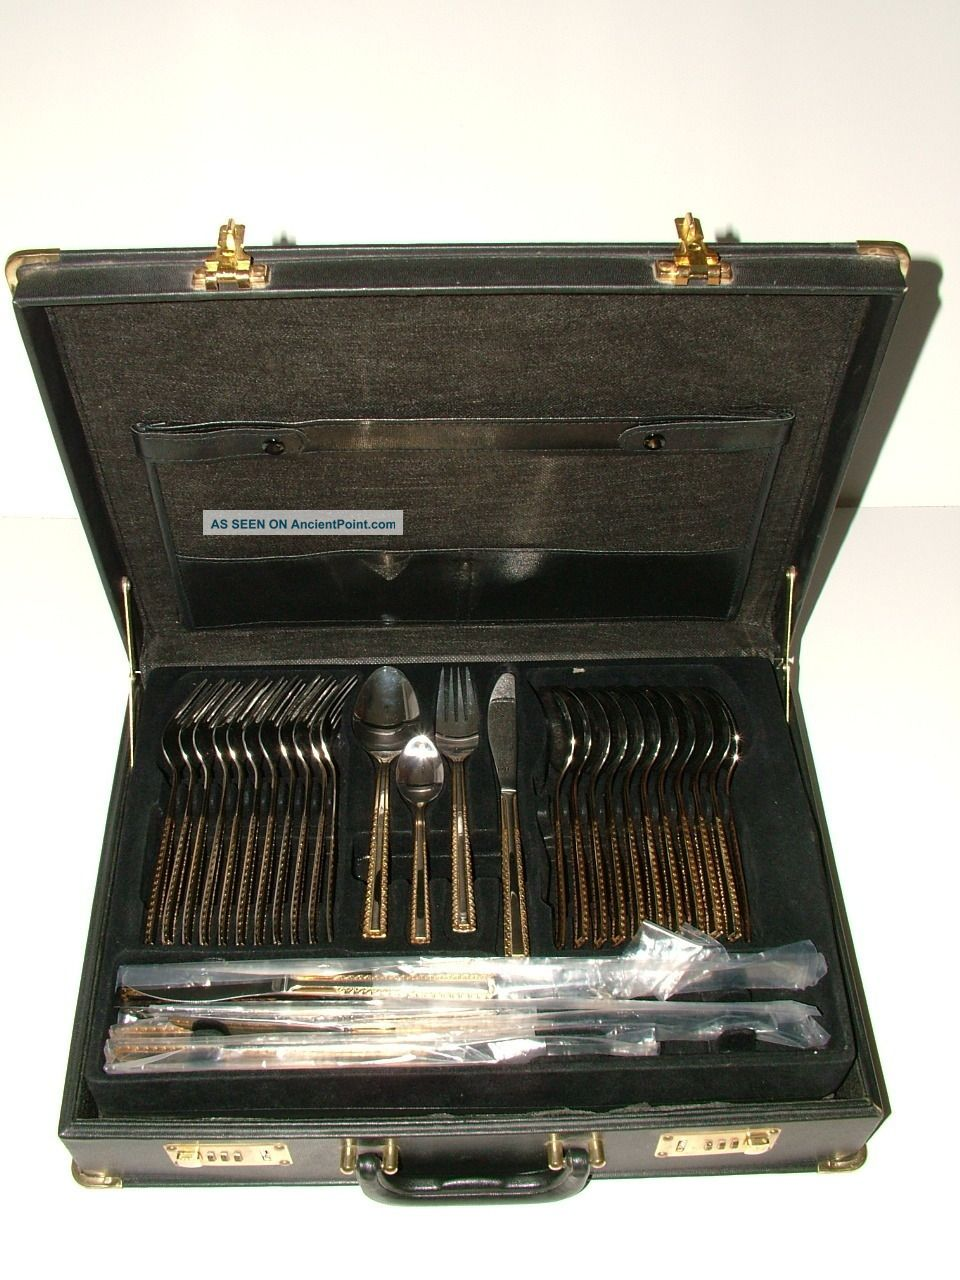 Silver And Gold Plate Set Of 67 Knives And Forks Canteen Of Cutlery Boxed Other photo